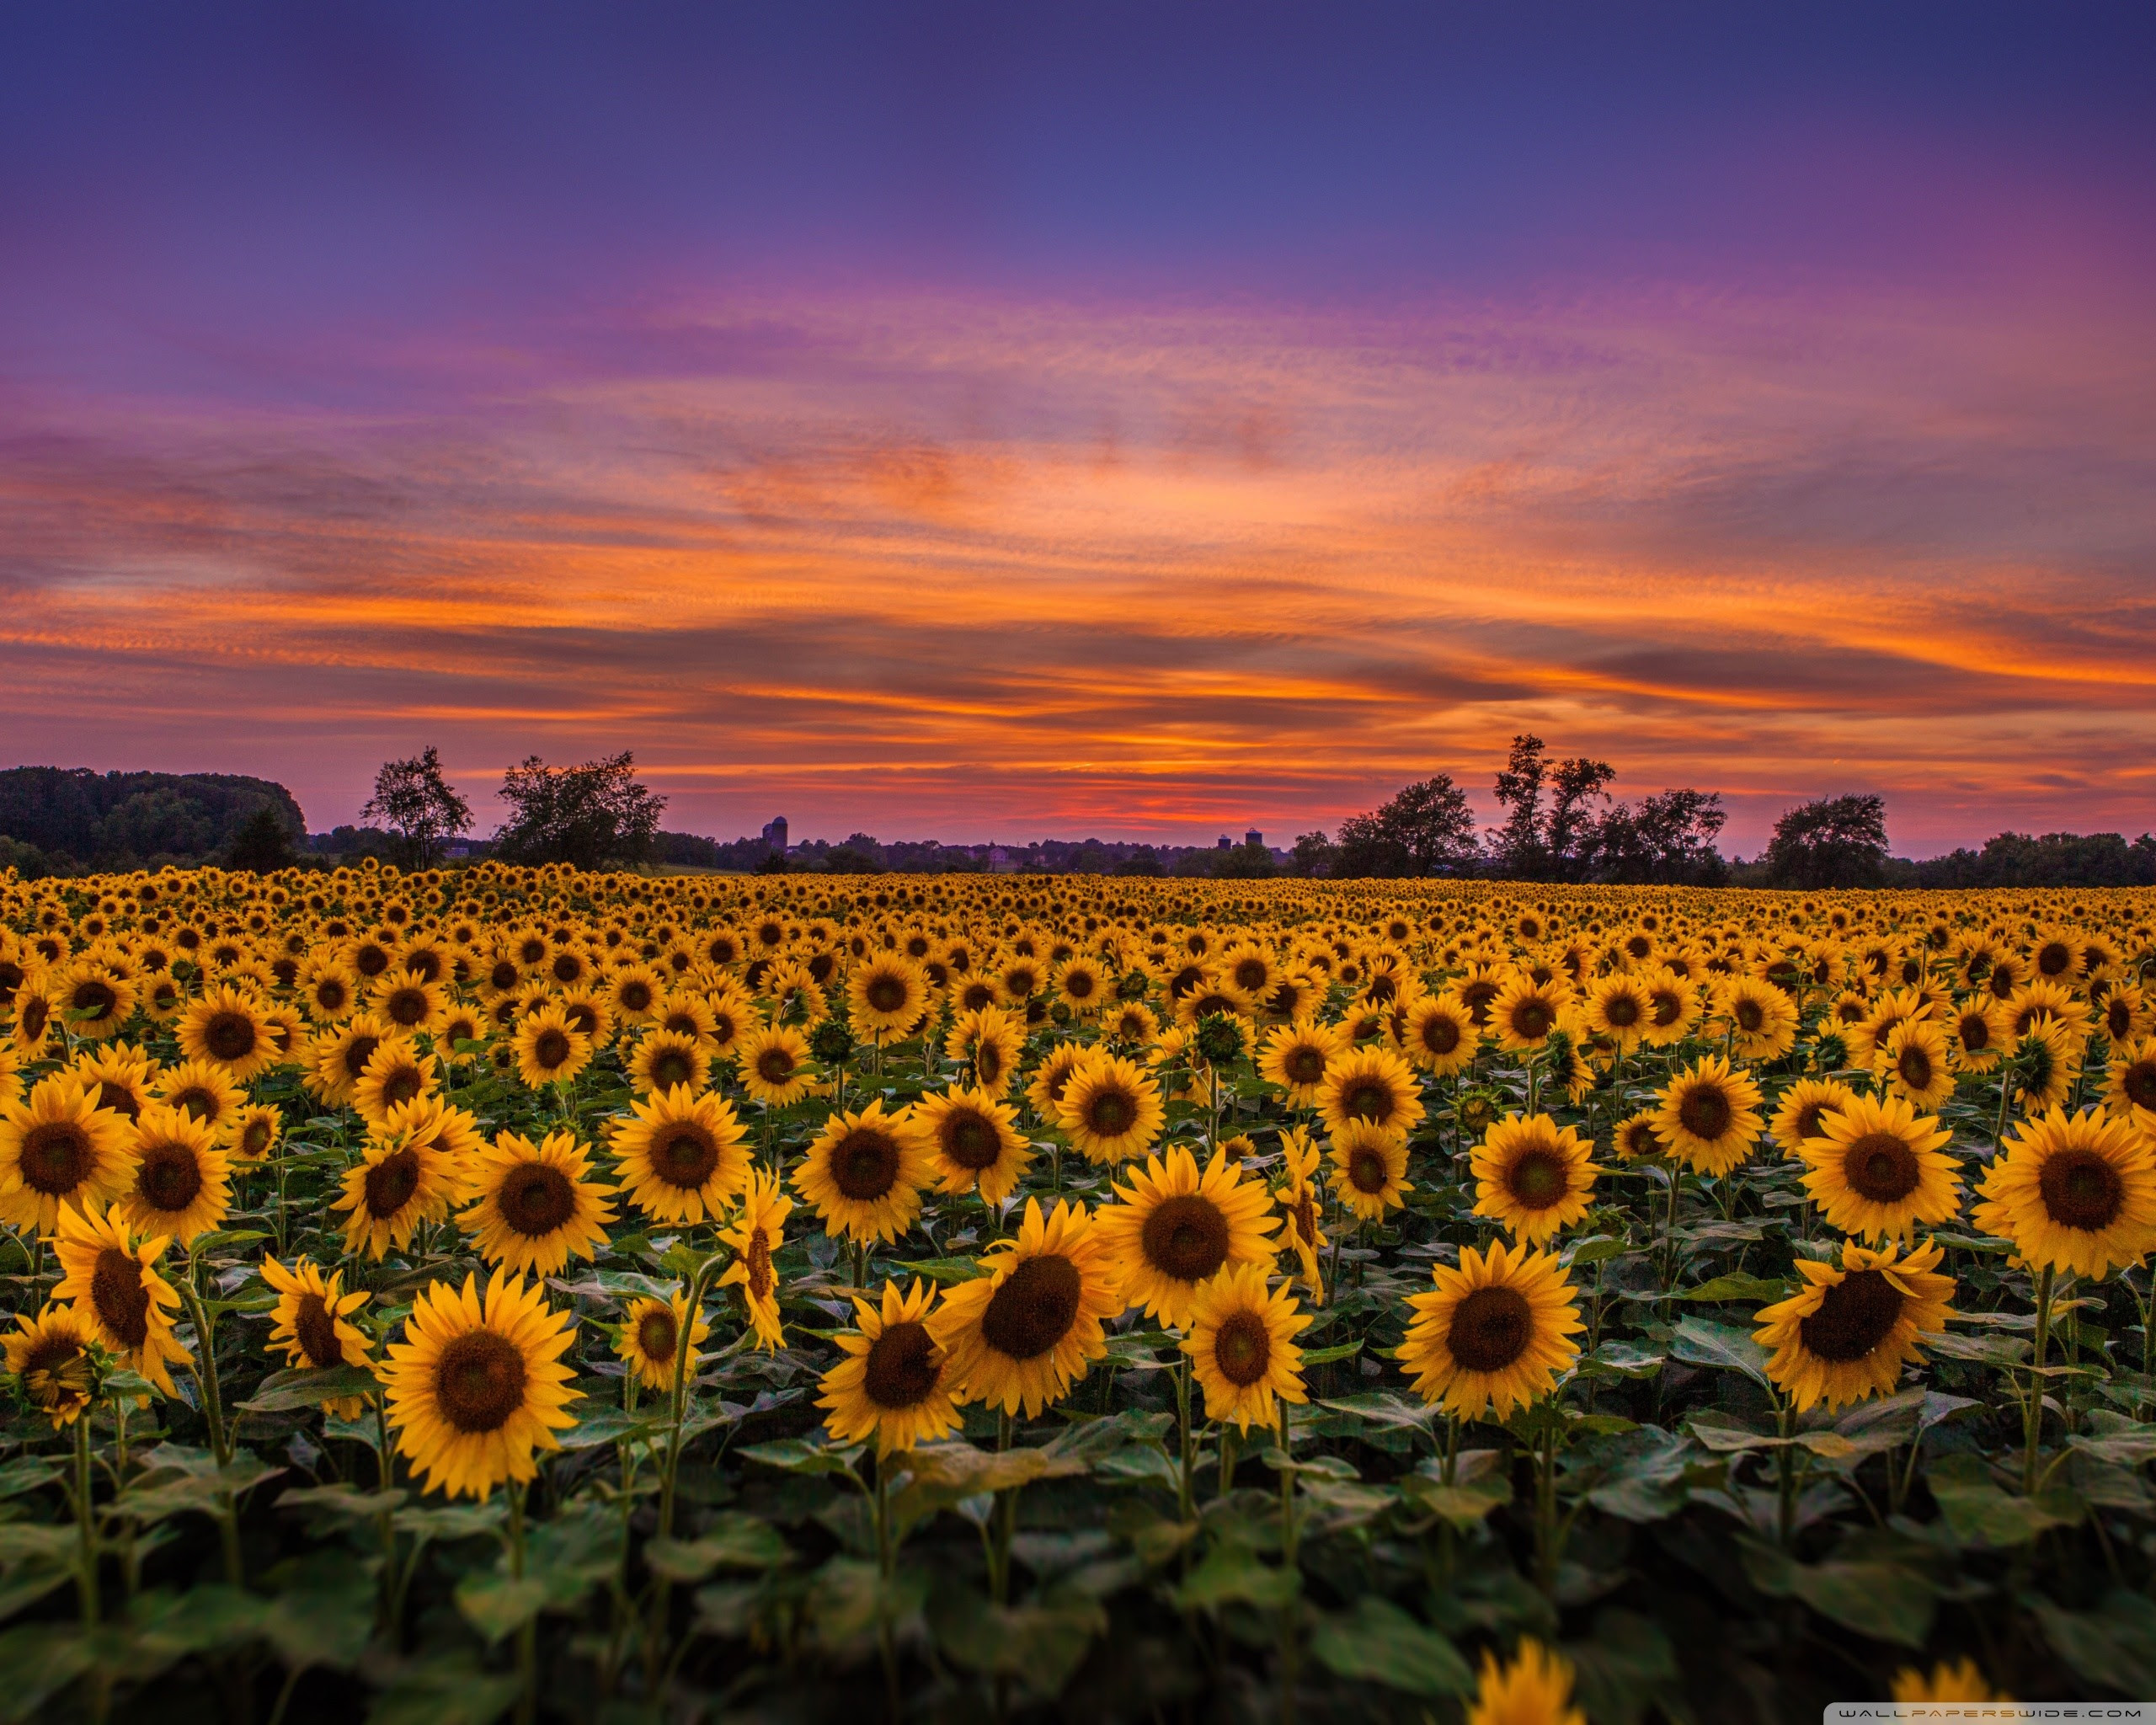 Sunflowers Wallpaper (61+ images)